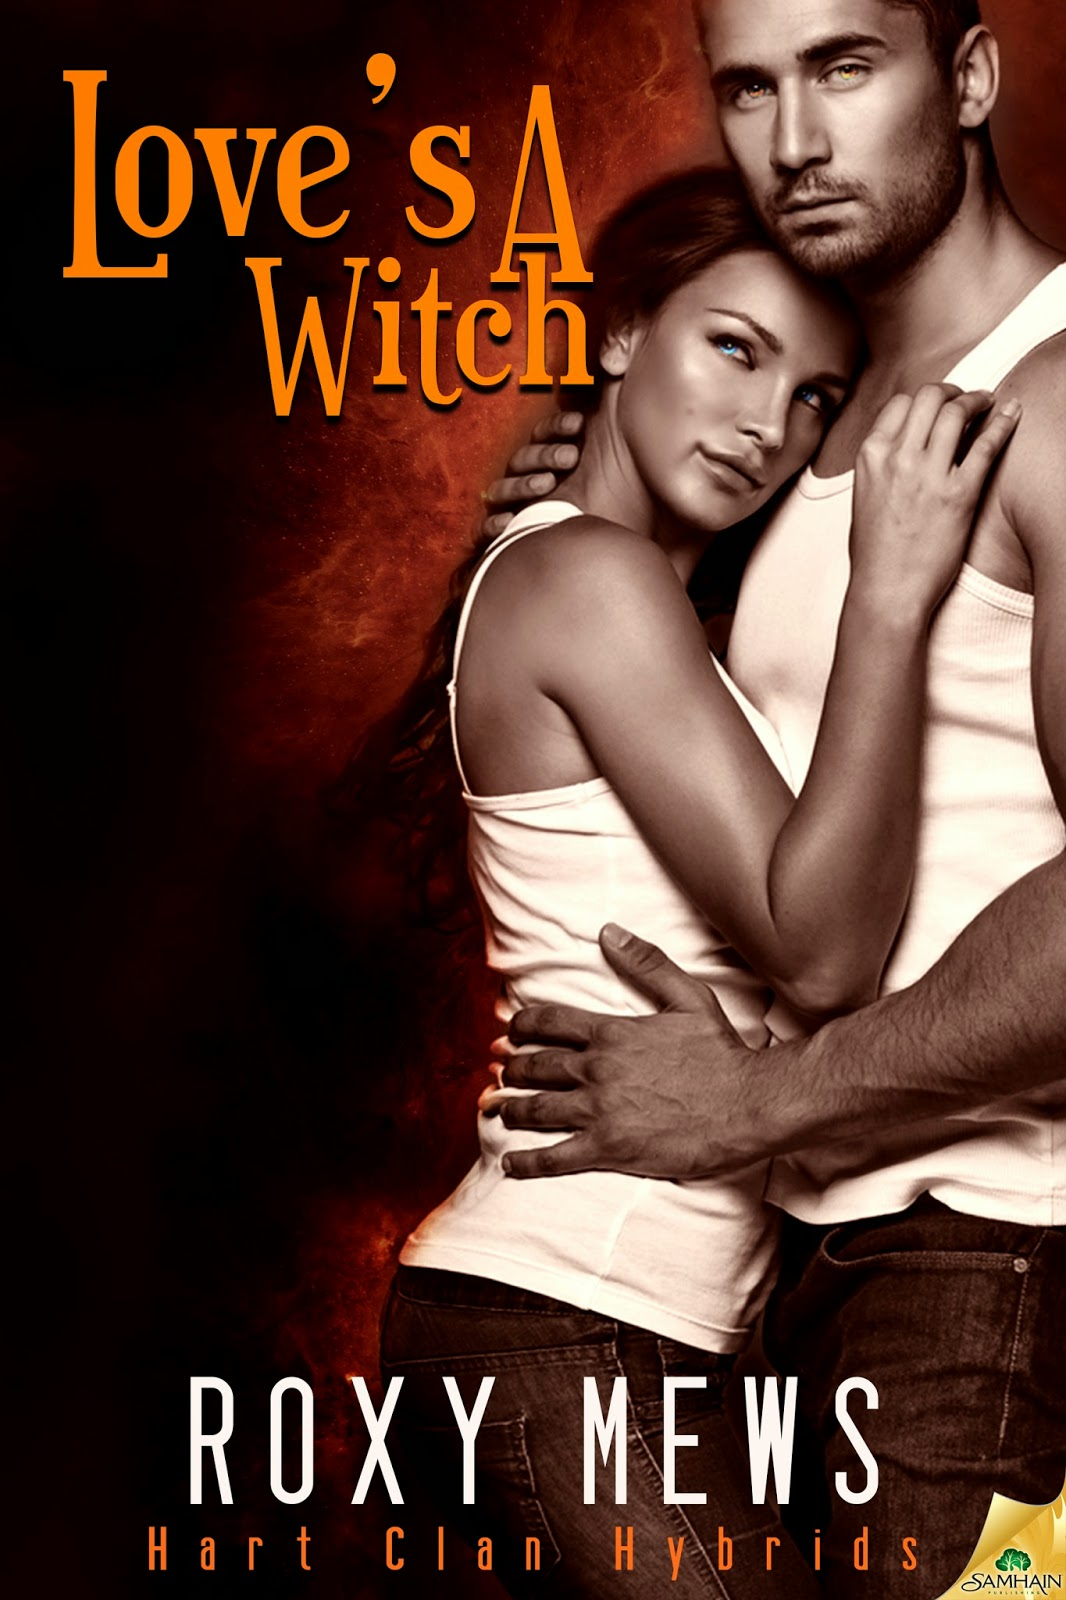 http://www.amazon.com/Loves-Witch-Hart-Clan-Hybrids-ebook/dp/B00J97UJ0Q/ref=sr_1_2?s=digital-text&ie=UTF8&qid=1395859830&sr=1-2&keywords=love%27s+a+witch